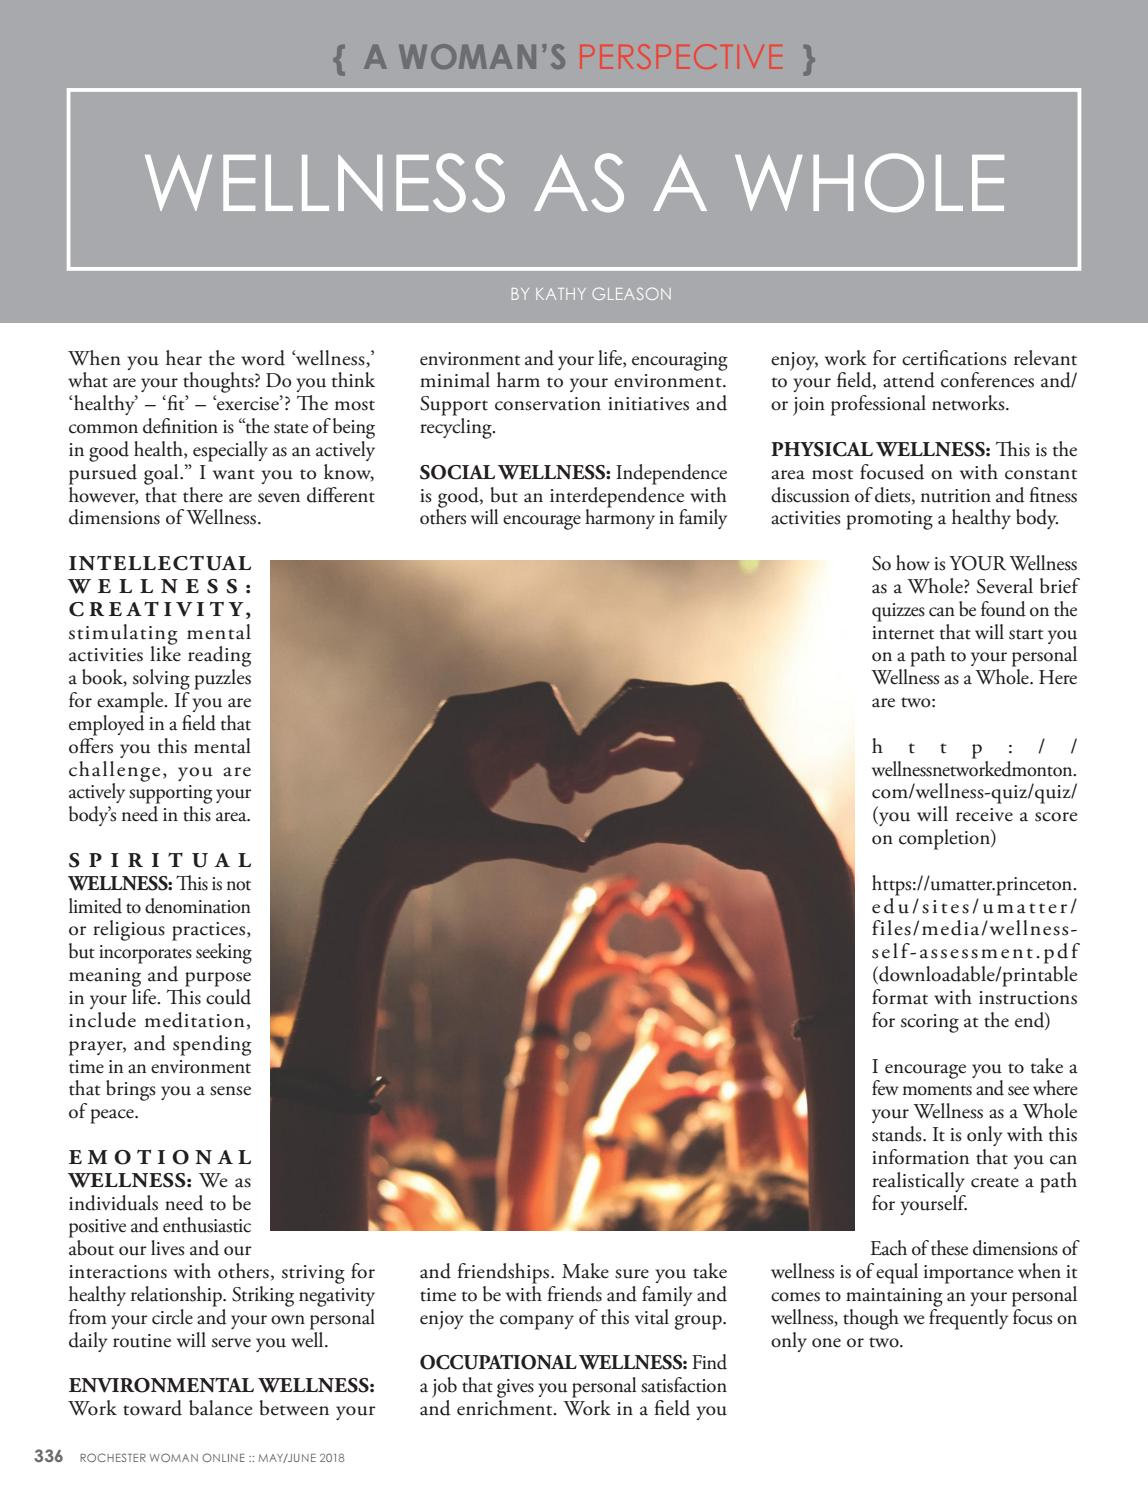 RWO May 2018 by Rochester Woman Online - issuu